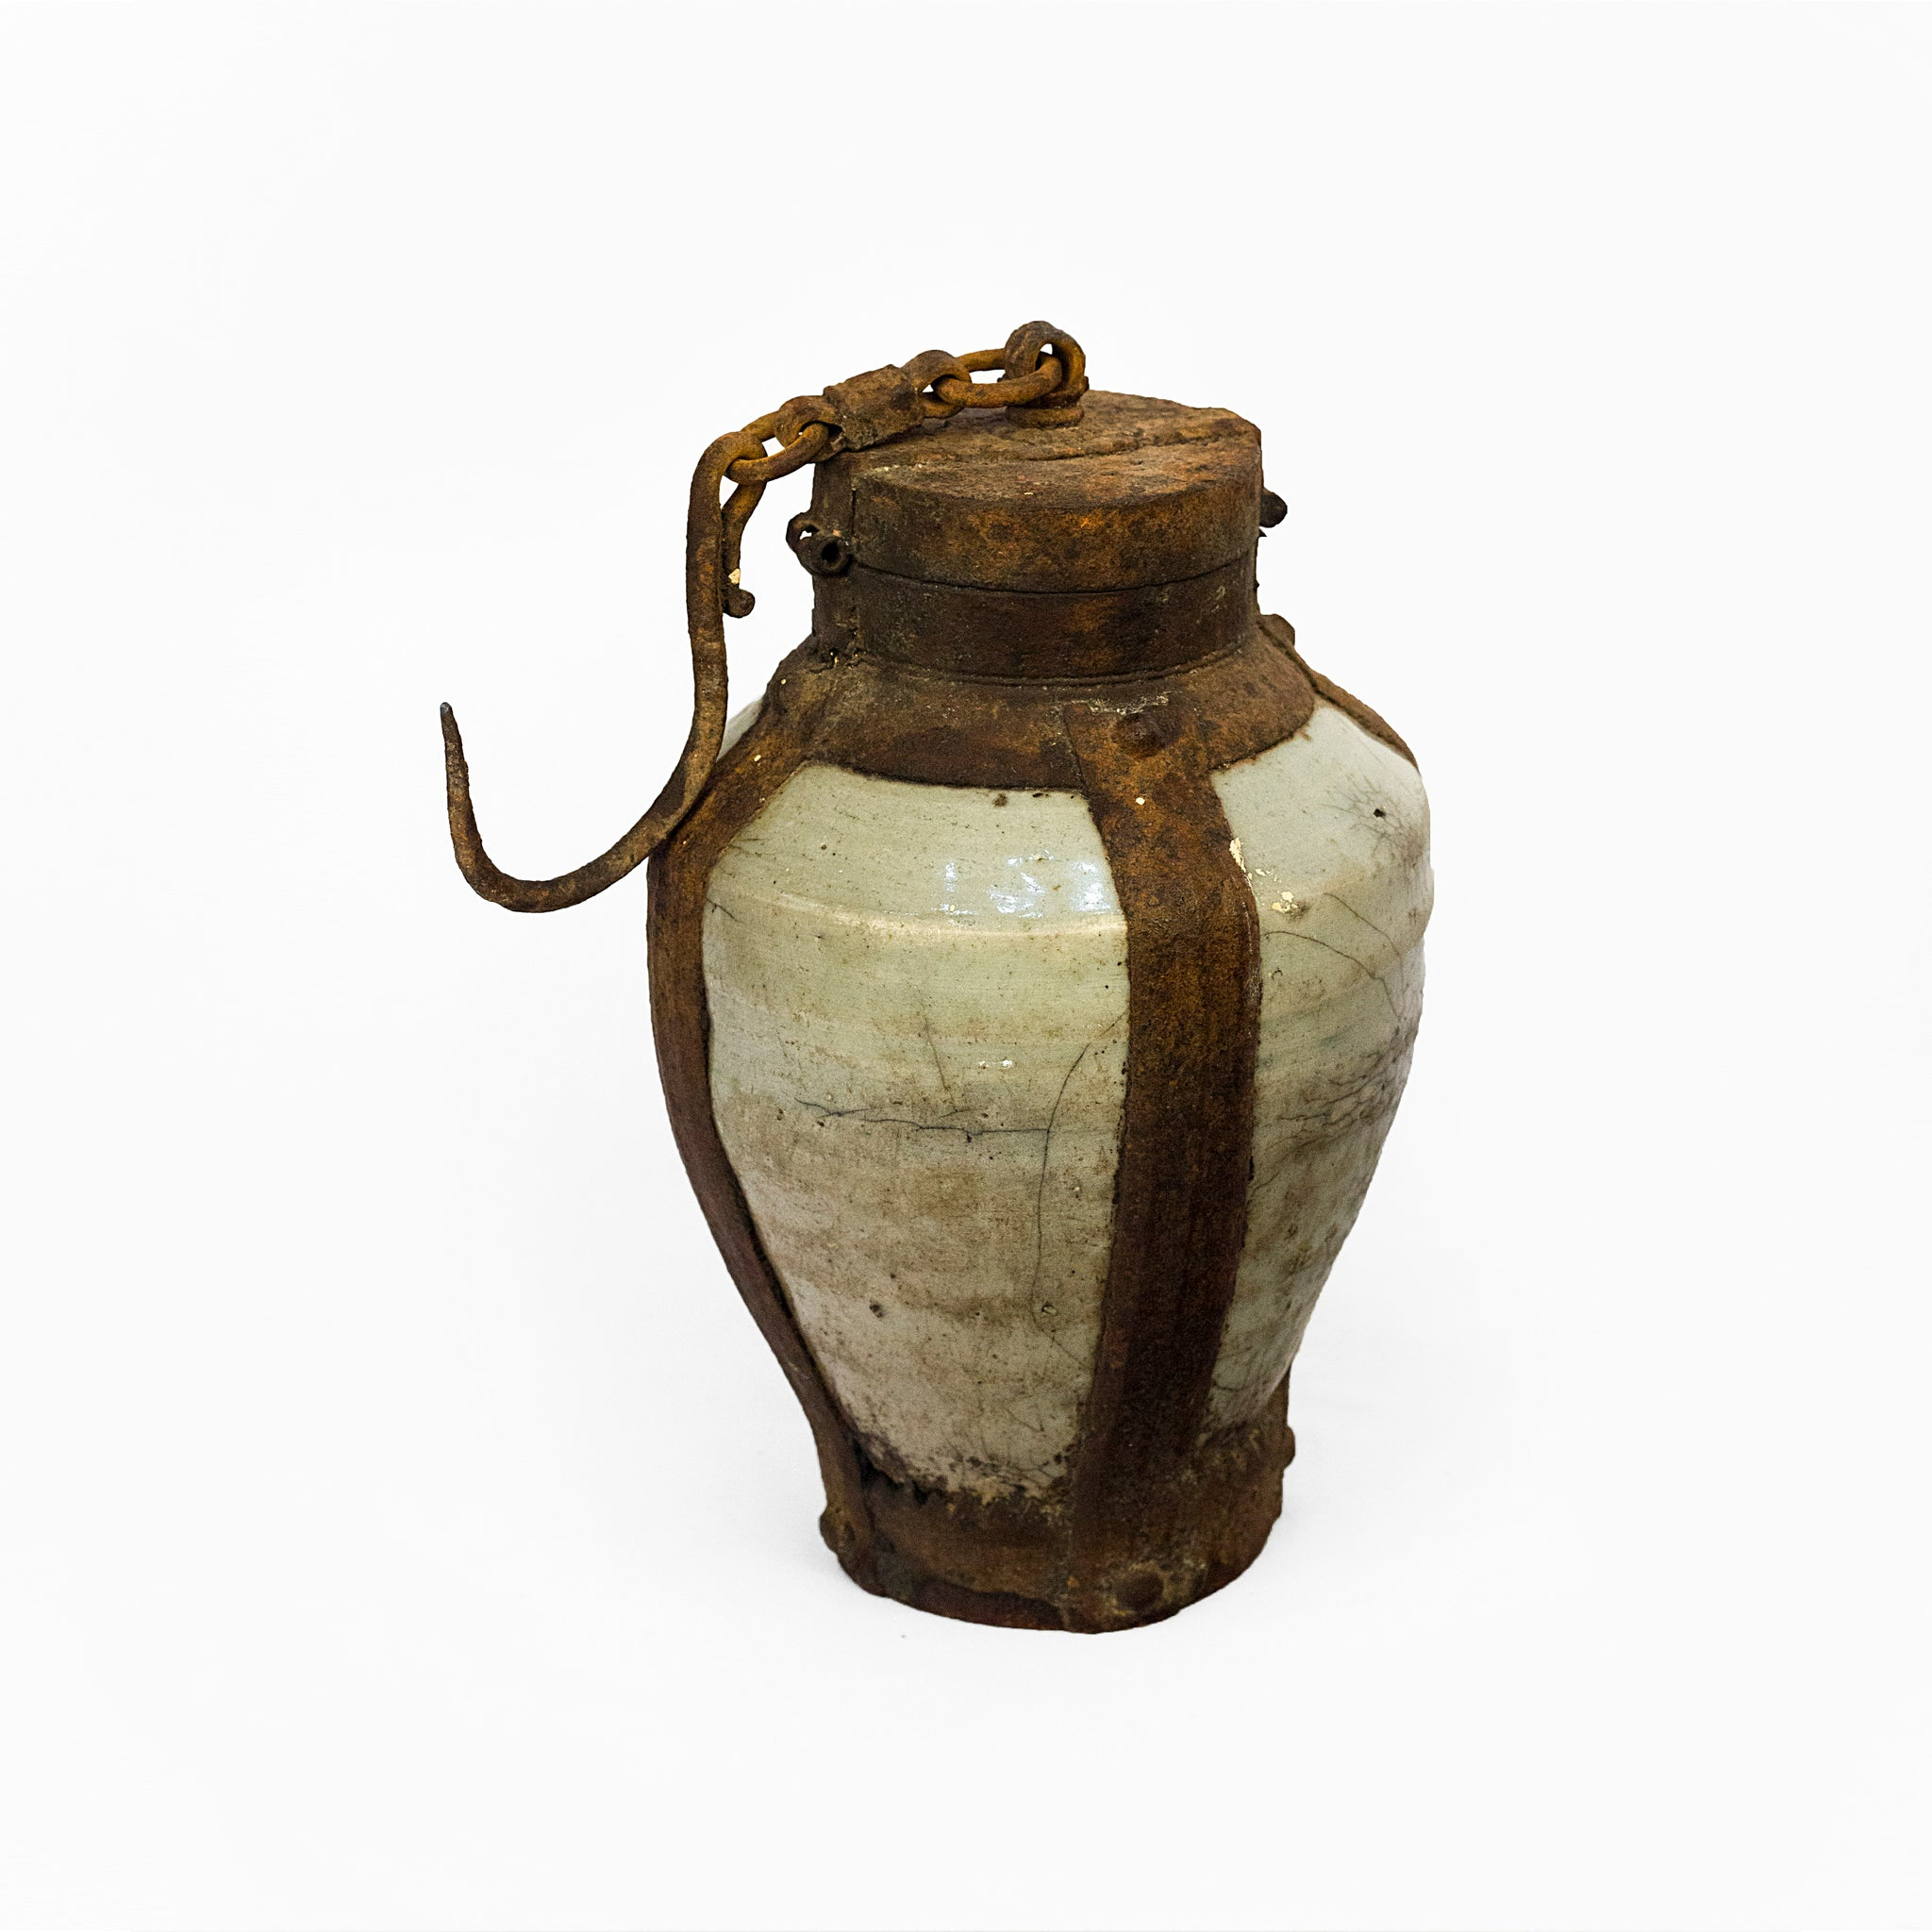 ANTIQUE GUNPOWDER FLASK